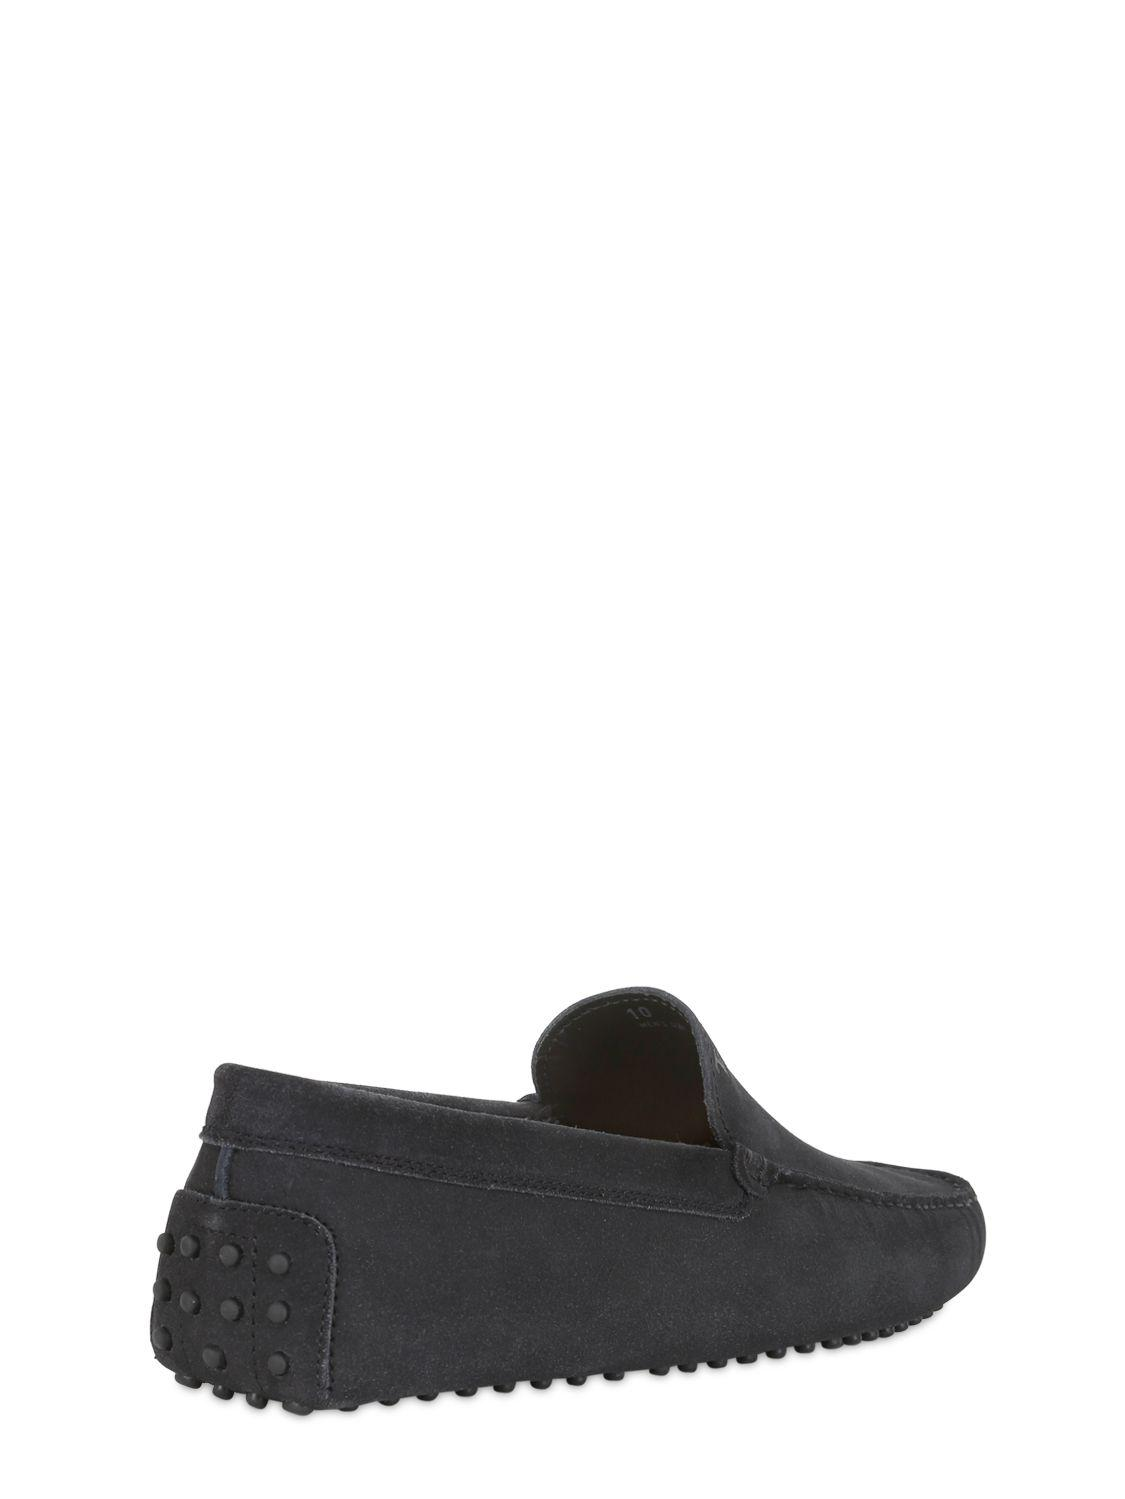 Tod's Gommino Suede Driving Shoes in Navy (Blue) for Men